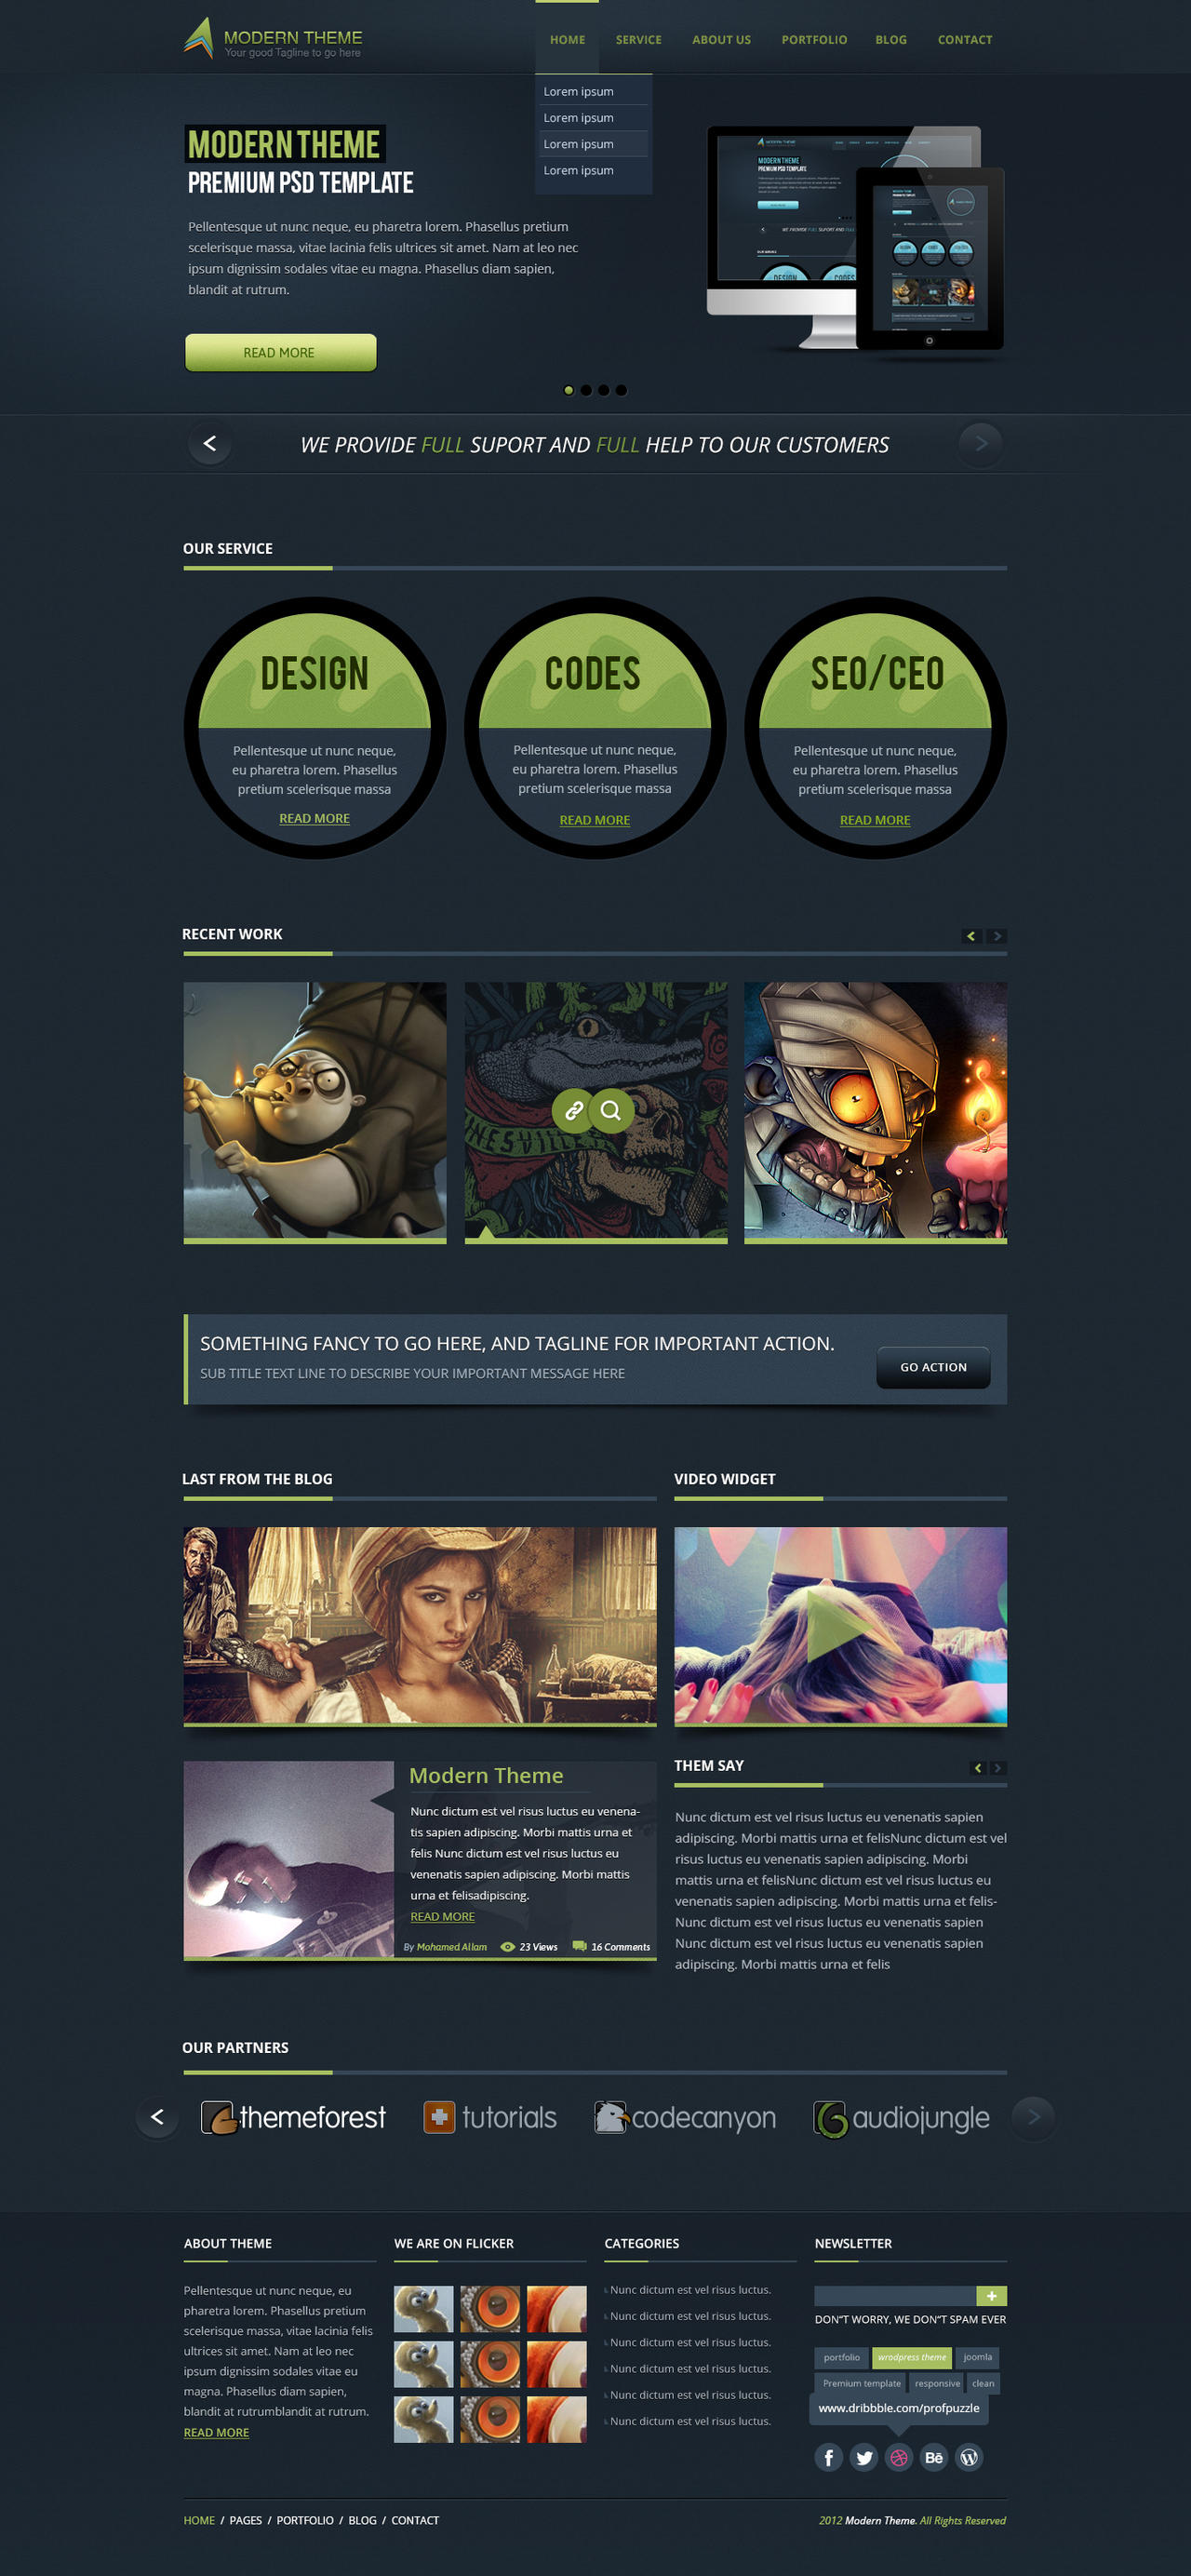 Modern Theme: Responsive HTML5 Retina Template by gohawise